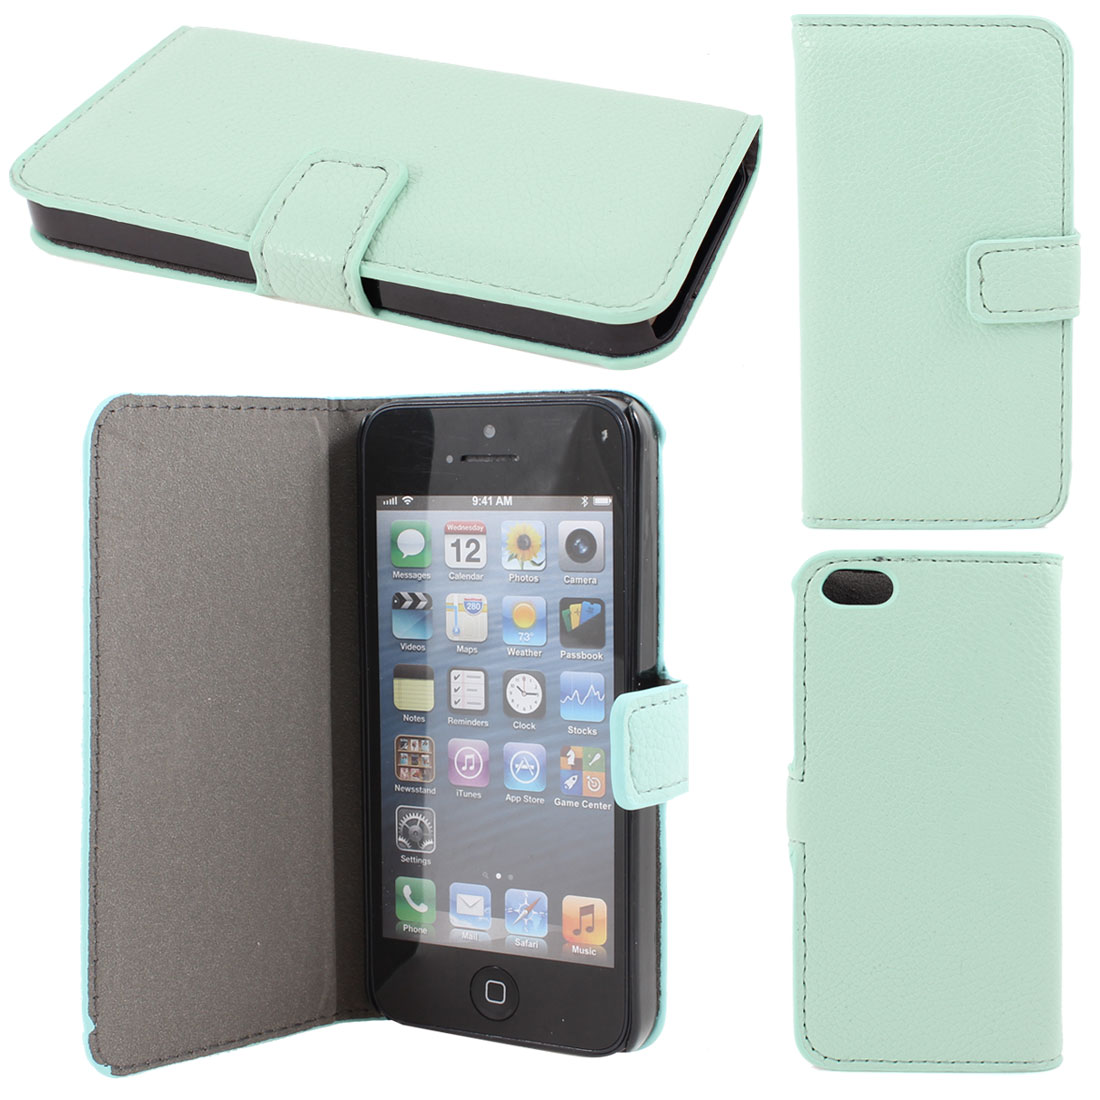 Light Aqua Litchi Pattern Faux Leather Flip Case Cover for Apple iPhone 5 5G